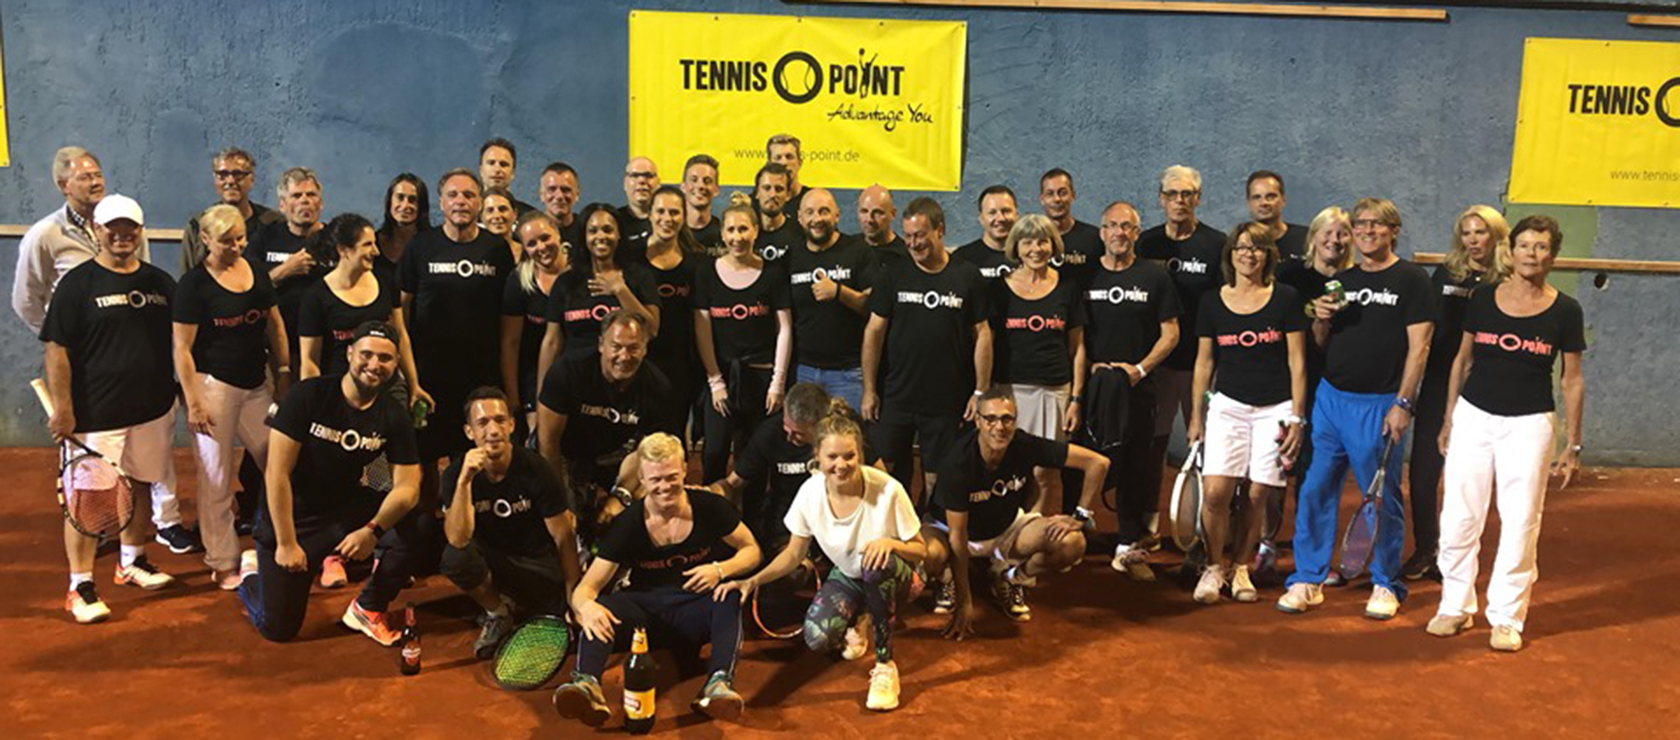 Int. Tennisweek by Tennis-Point